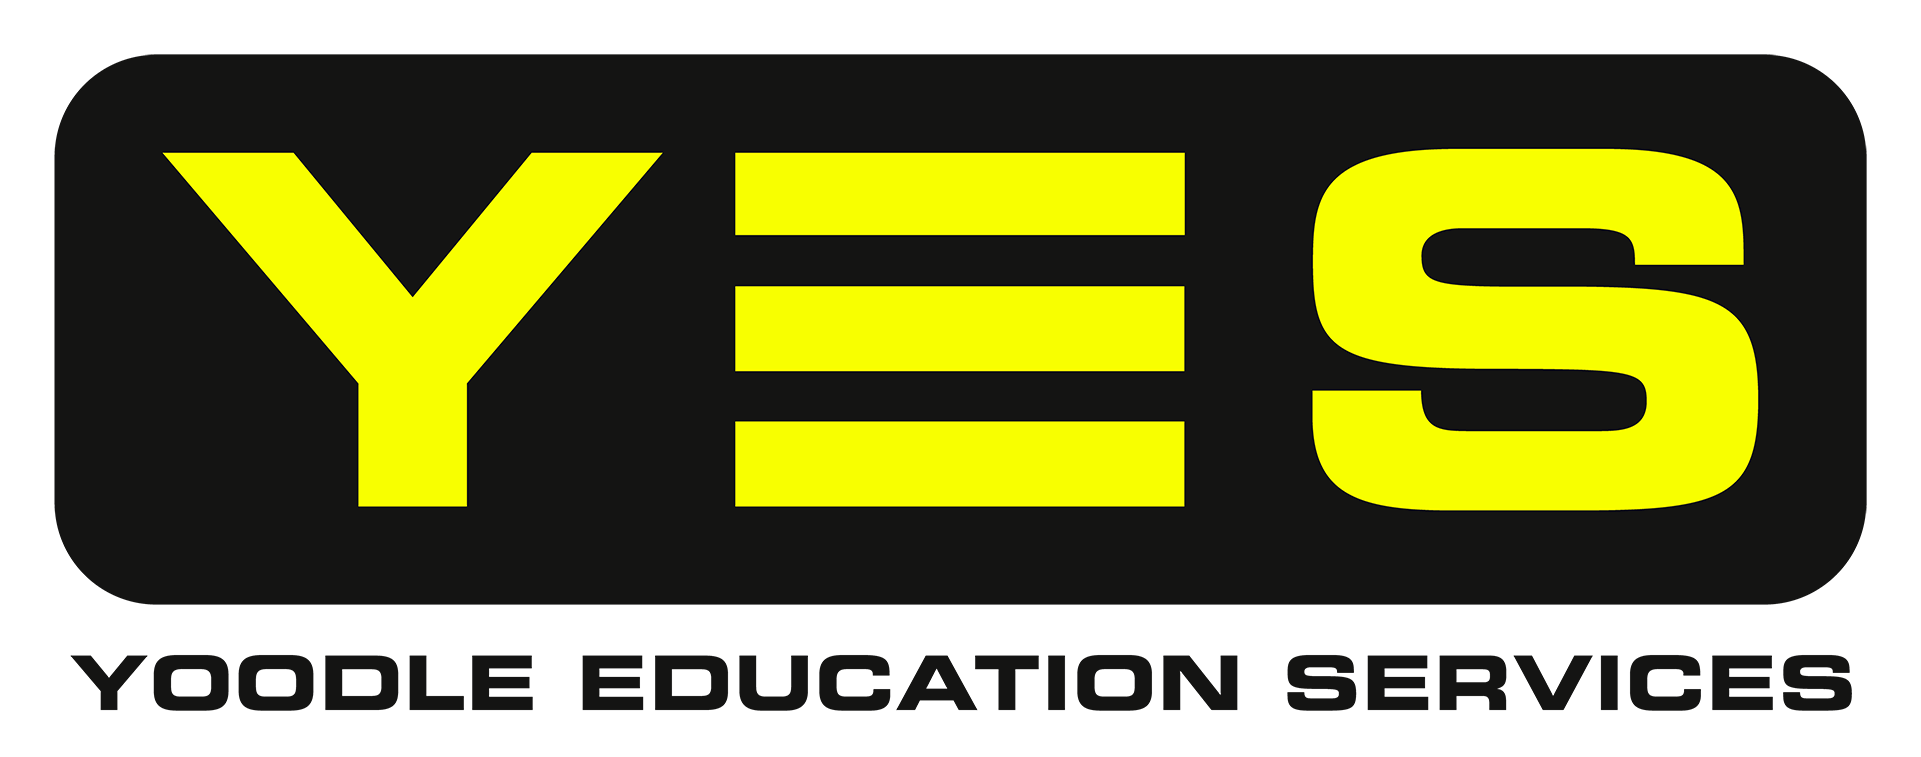 YES Yoodle Education Services